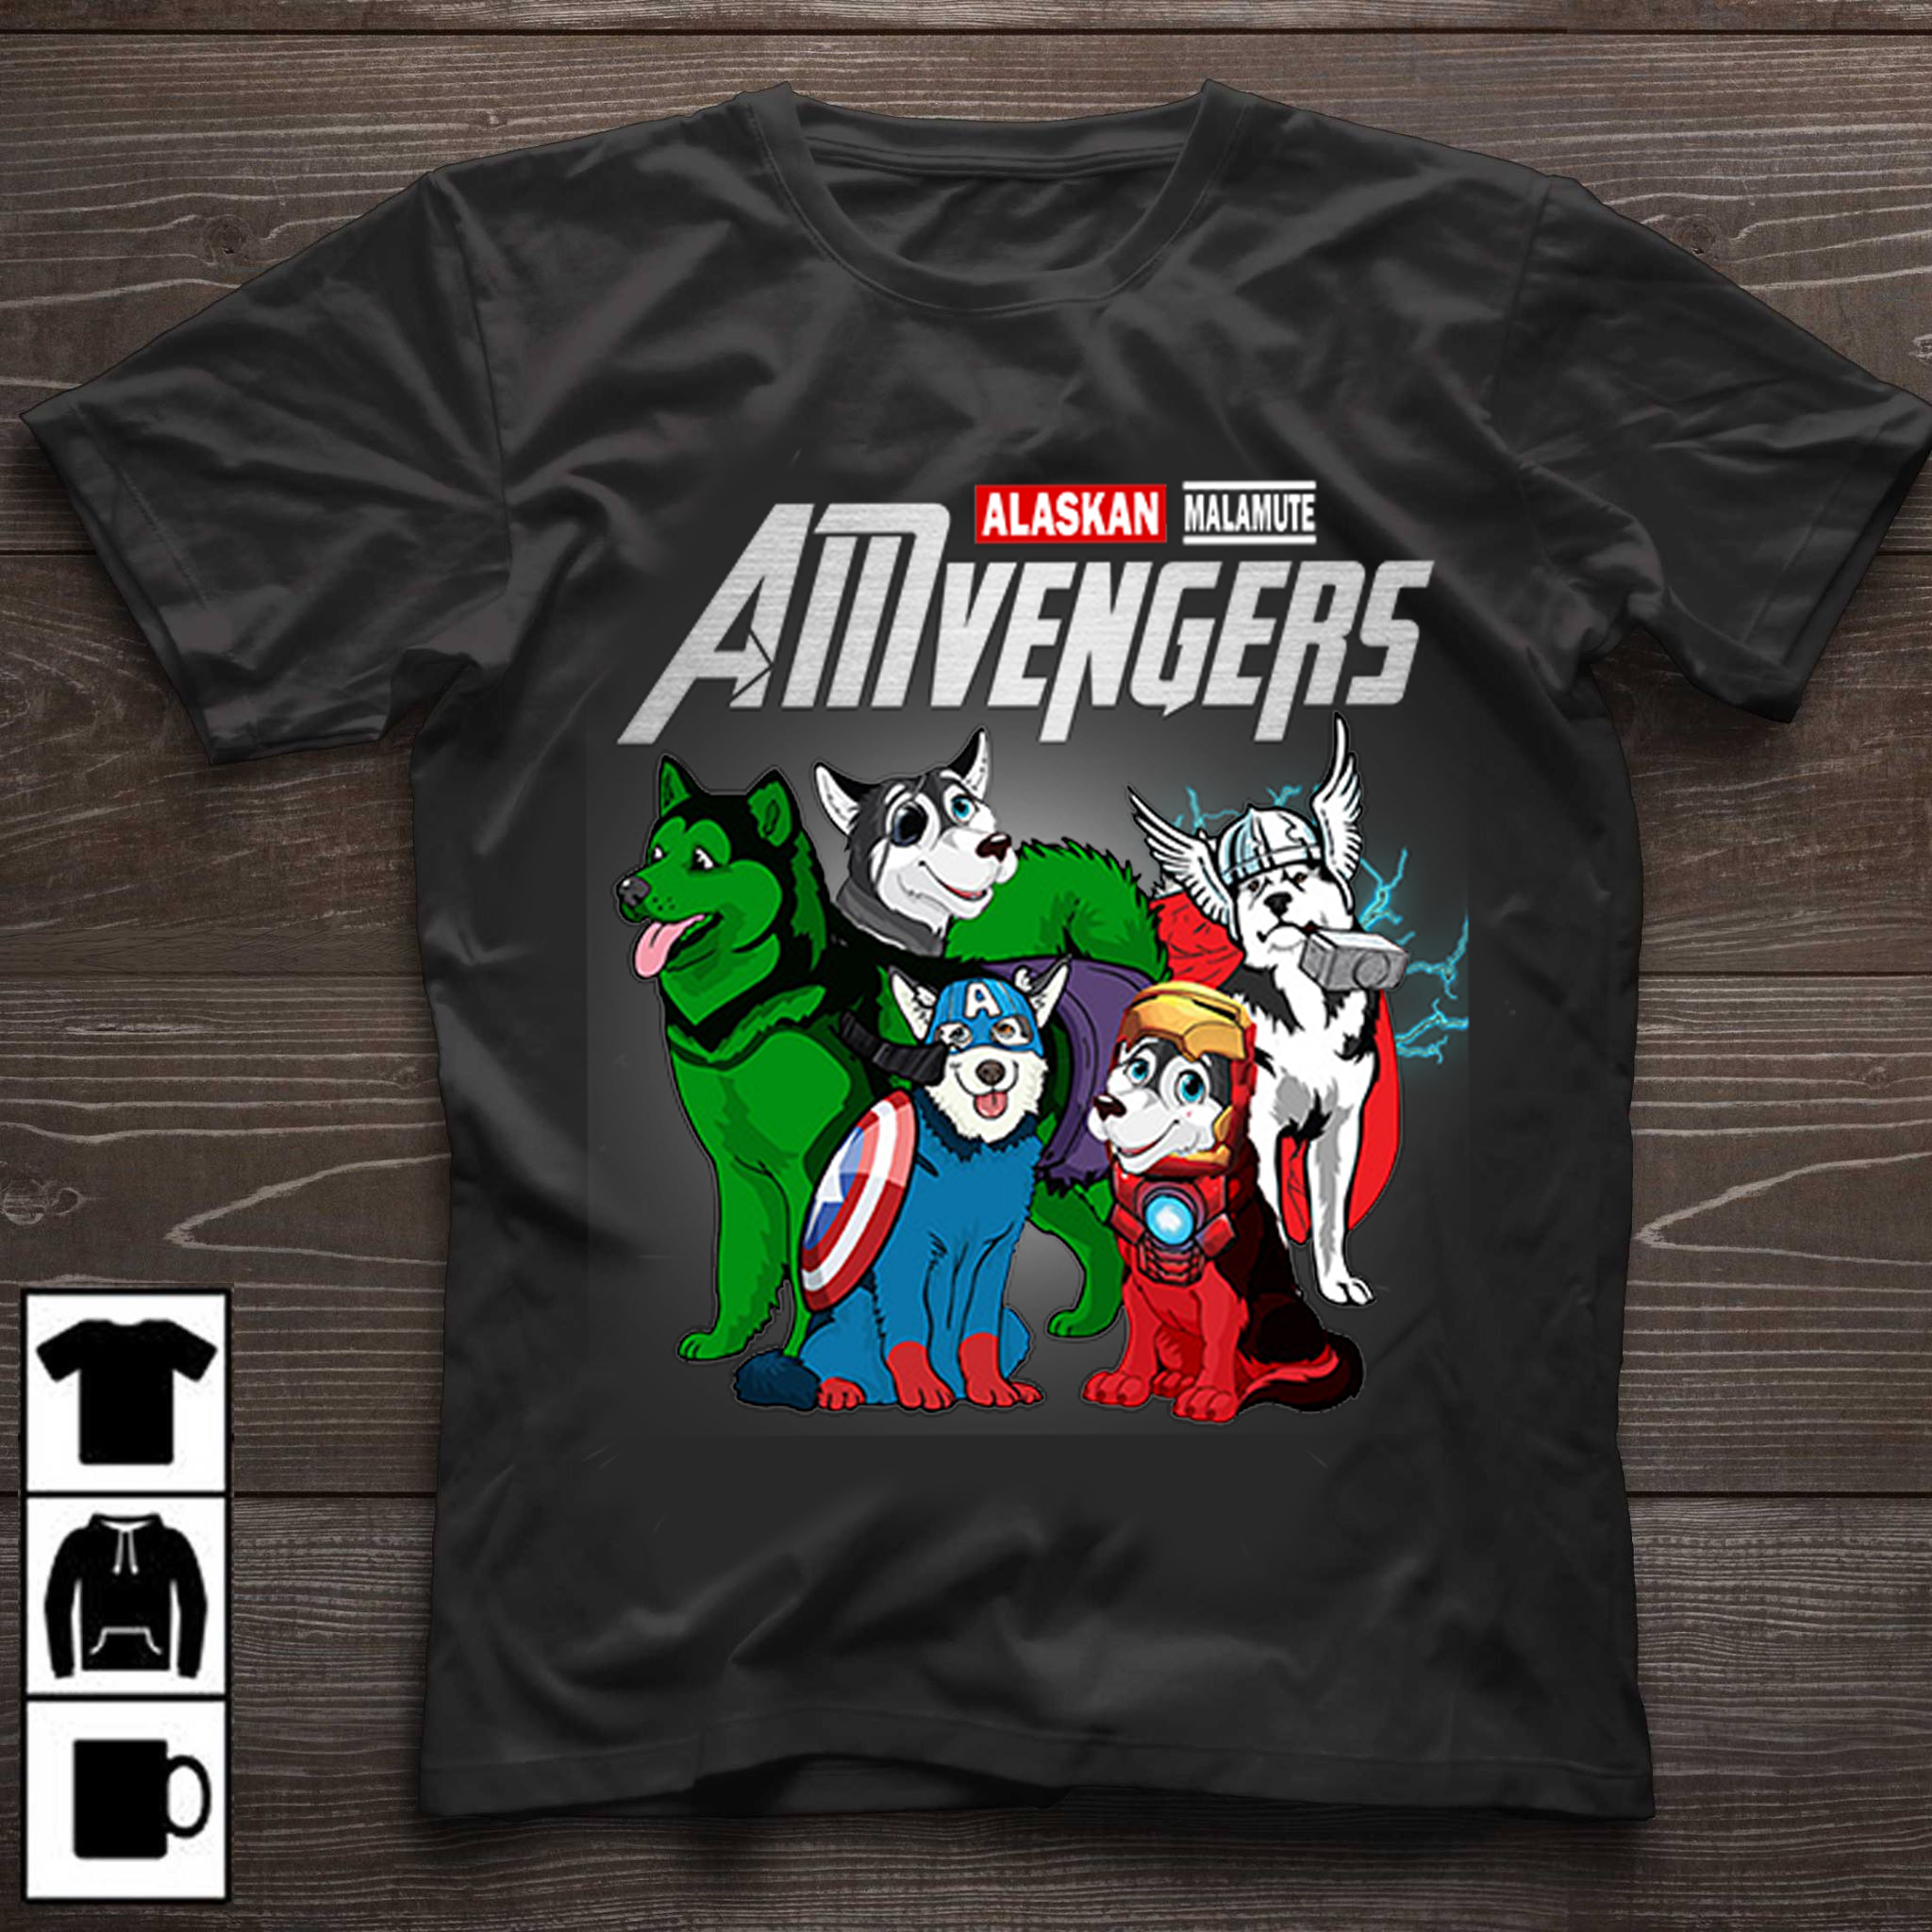 43ba1656d Buy American Avengers Icon T-Shirt online Do you love your Alaskan Dog? Then